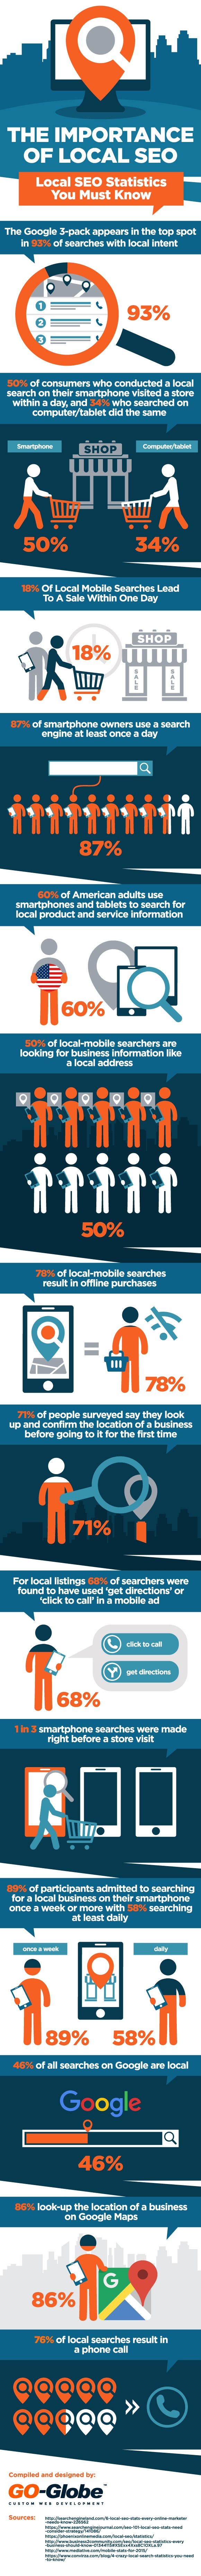 Local SEO Stats - Infographic